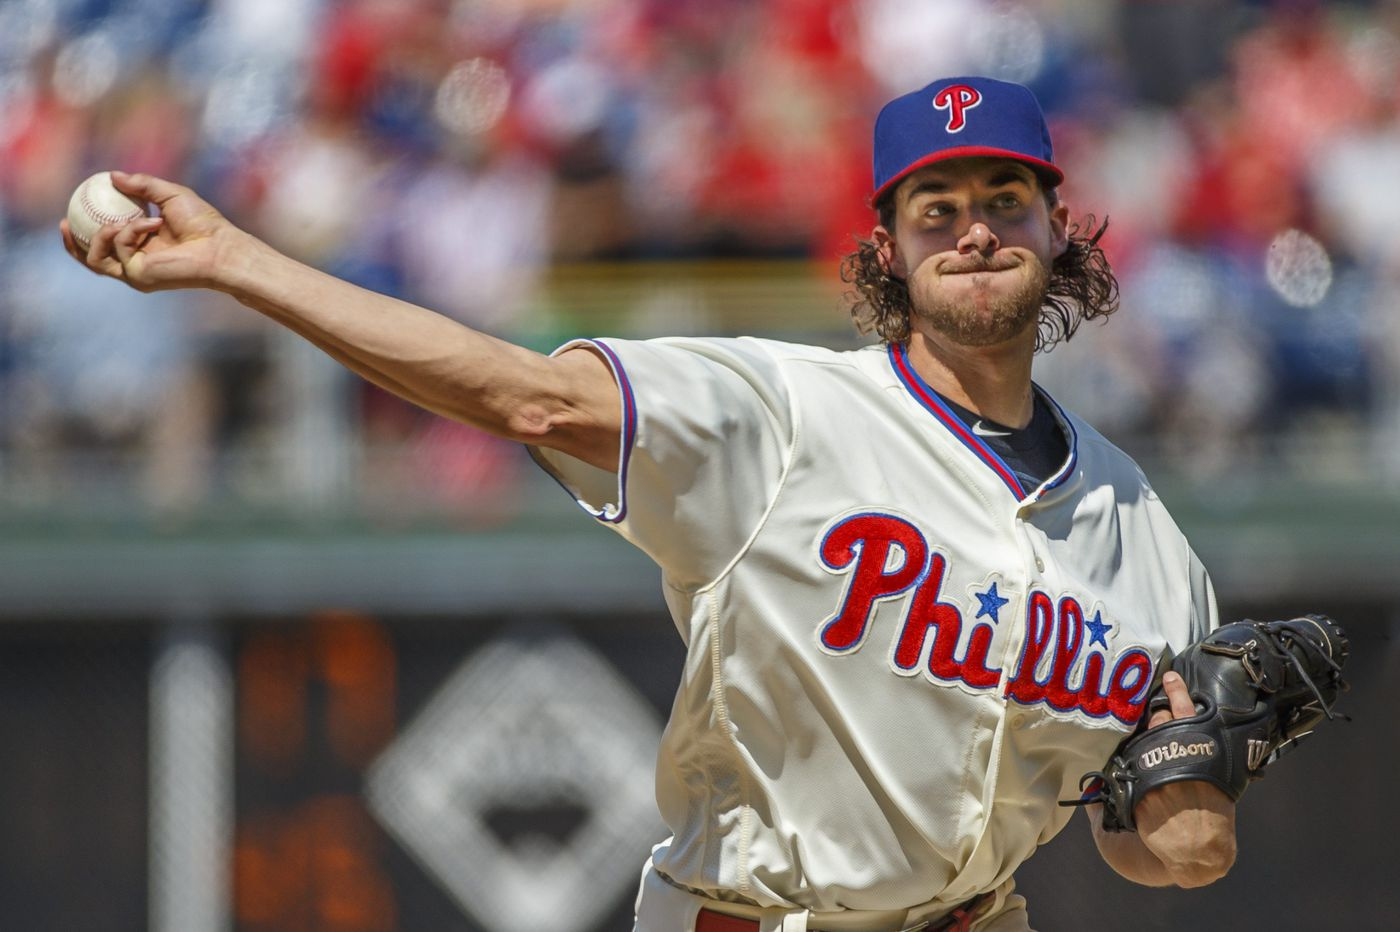 Phillies tweak rotation to give Aaron Nola two starts against Braves